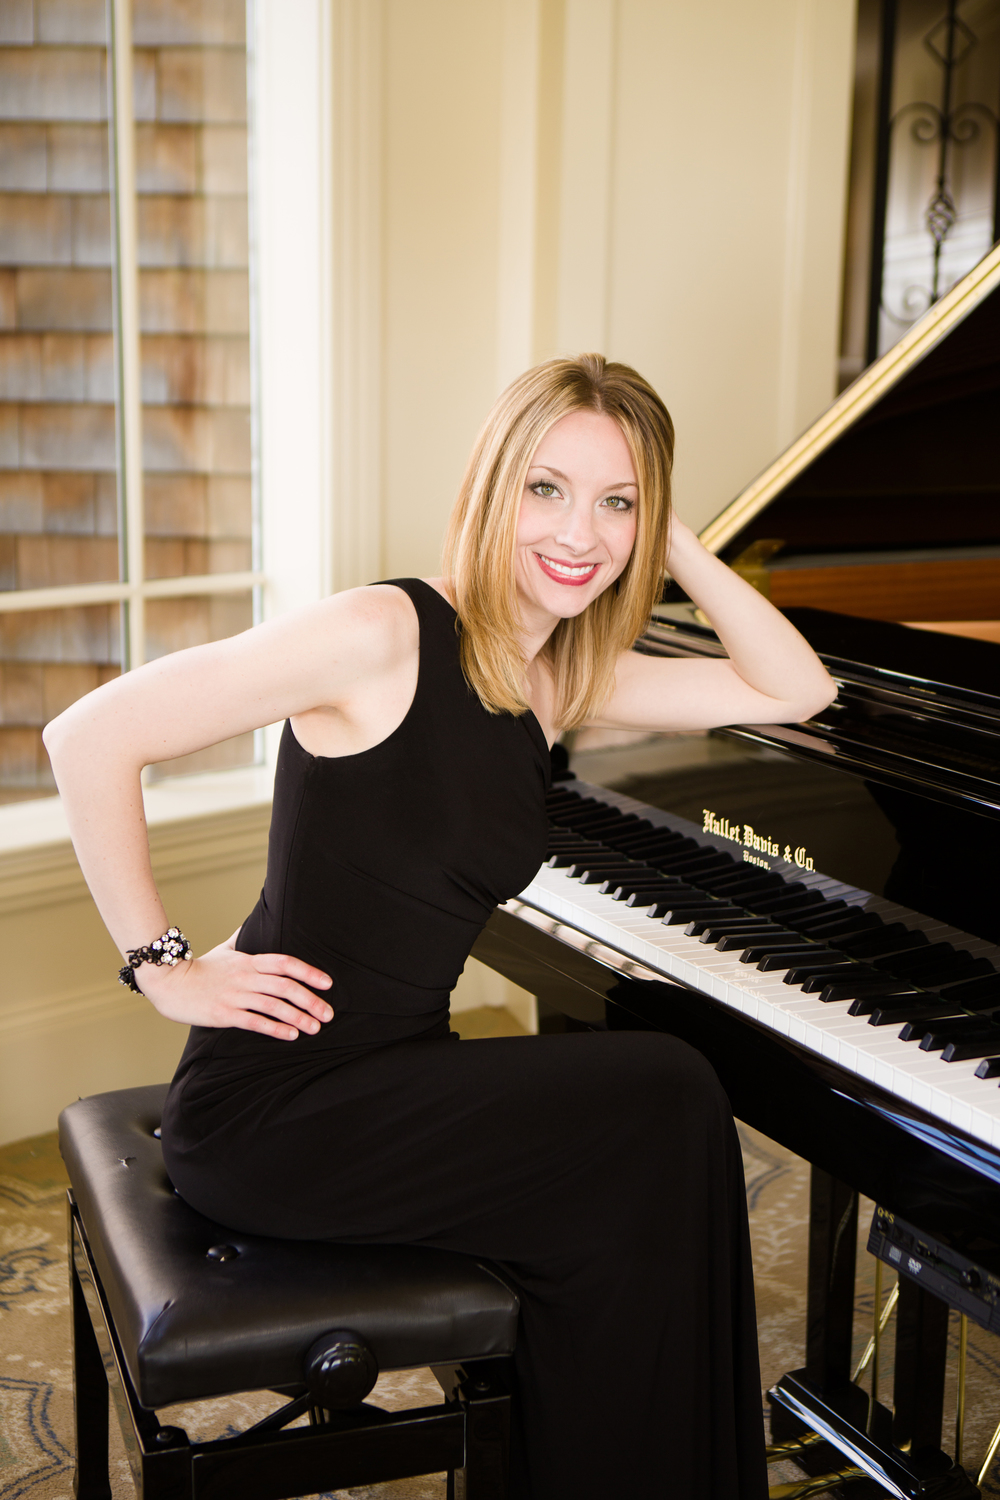 004Yvonne-pianist-singer-Vail-Fucci2319.jpg